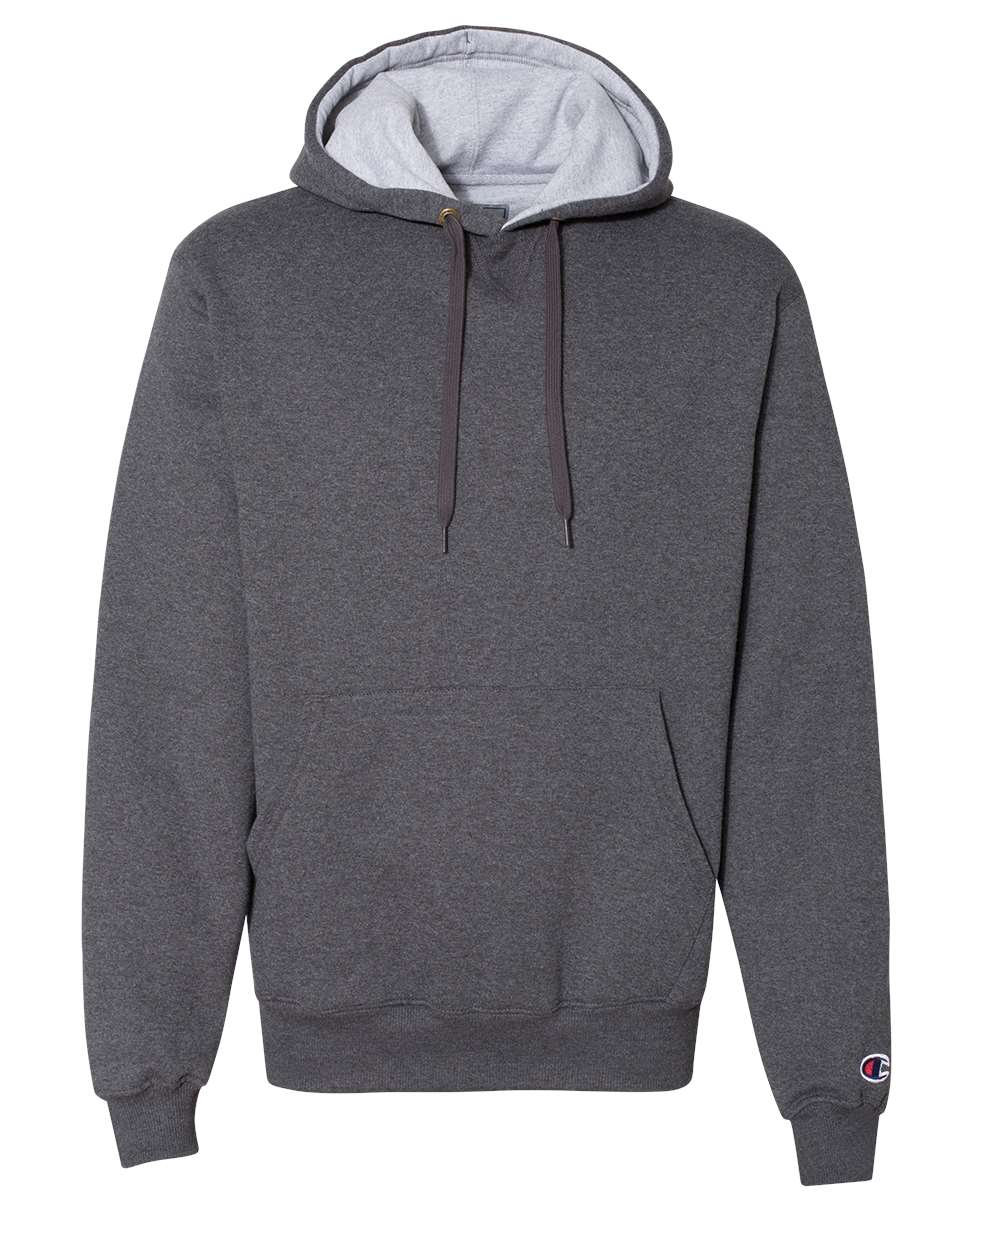 Champion-Mens-Cotton-Max-Hooded-Sweatshirt-Hoodie-Pullover-S171-up-to-3XL miniature 9